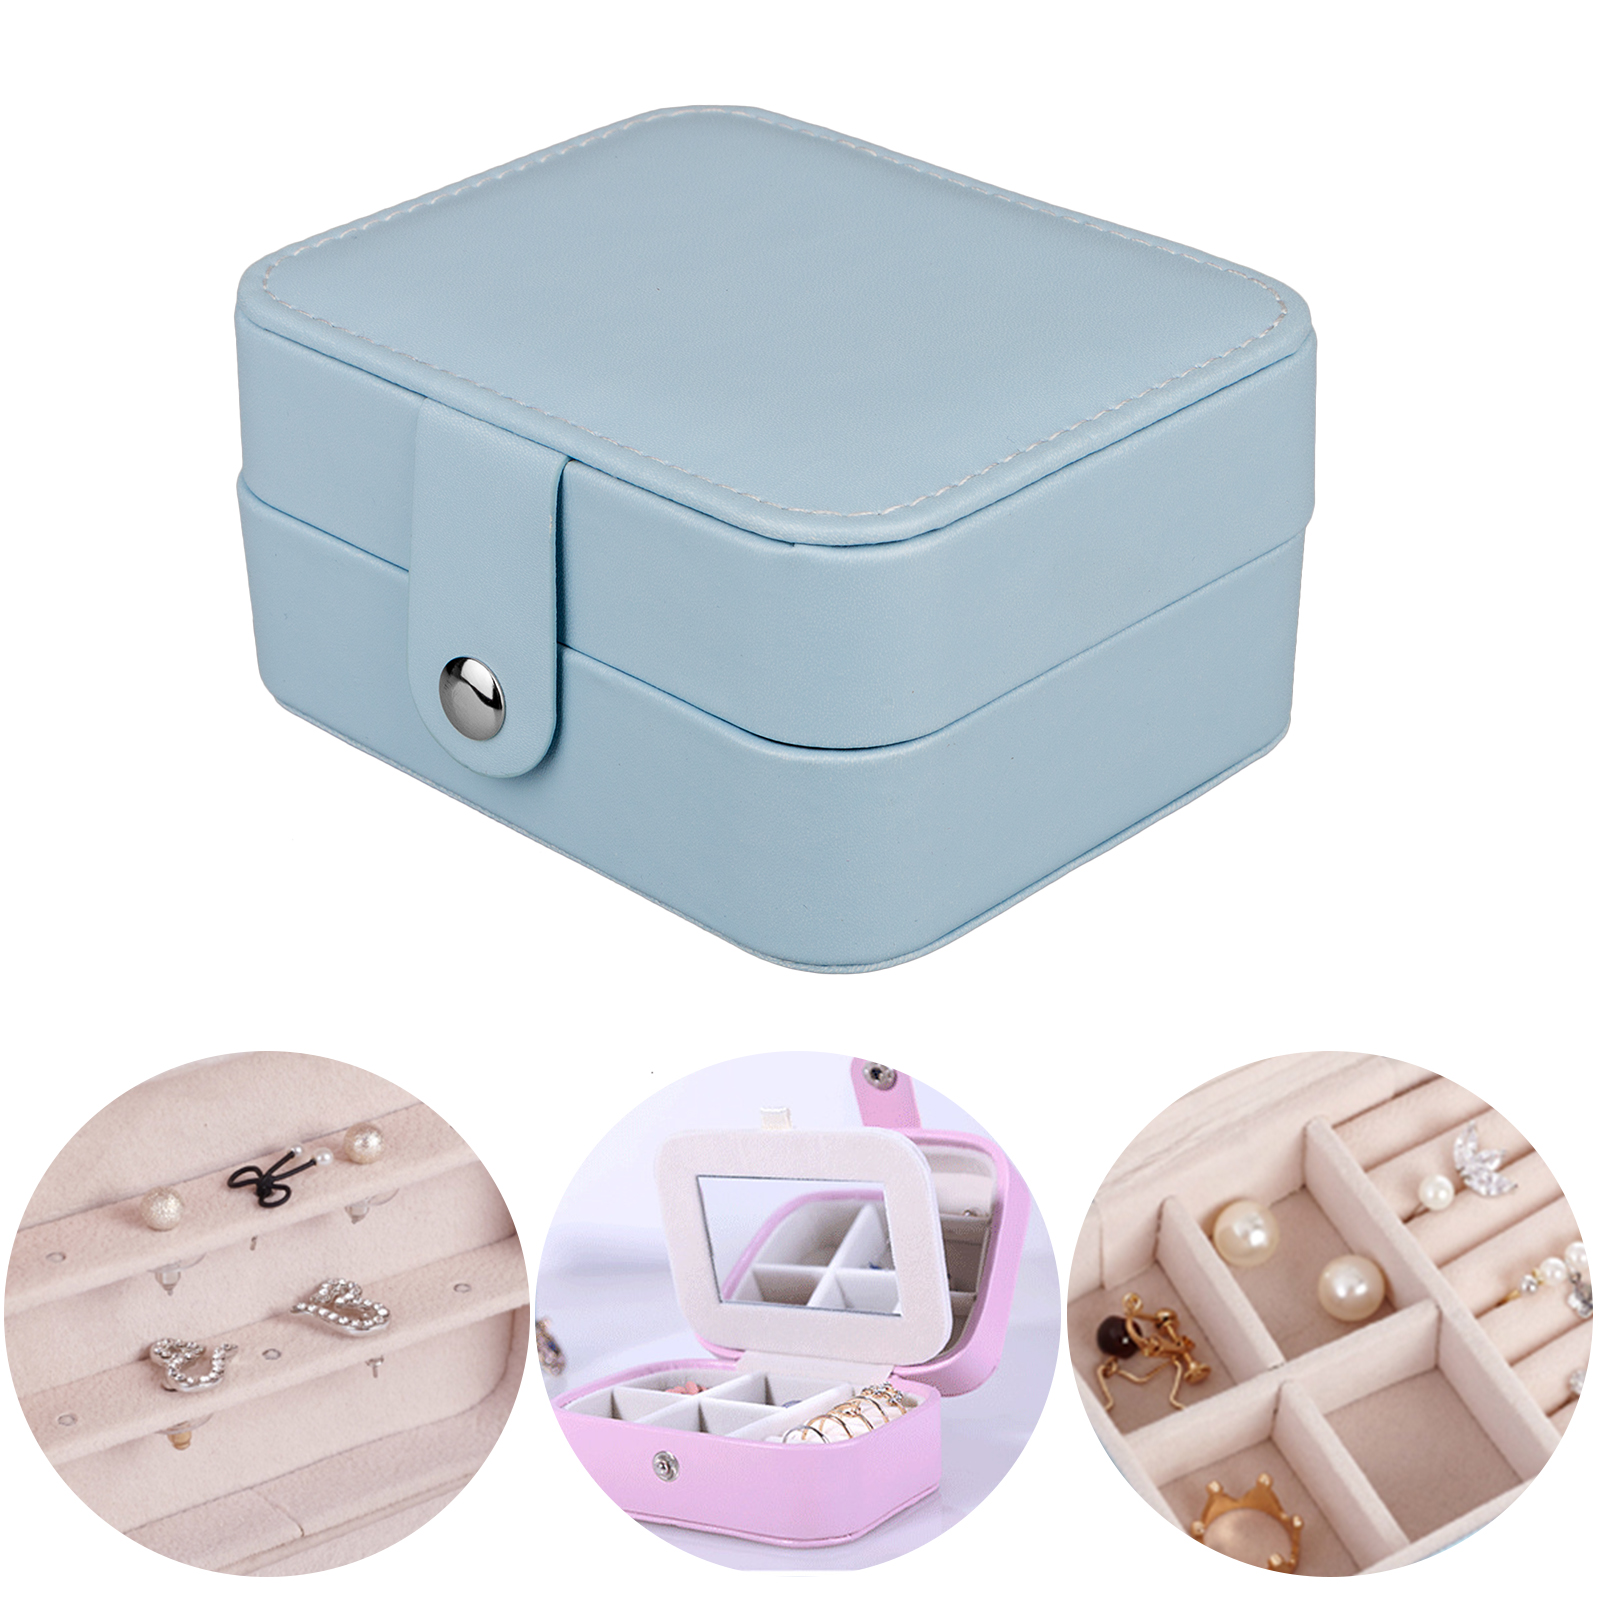 Travel Makeup Train Case Makeup Cosmetic Case Organizer Portable Artist Storage Bag with Adjustable Dividers for Cosmetics Makeup Brushes Toiletry Jewelry Digital accessories